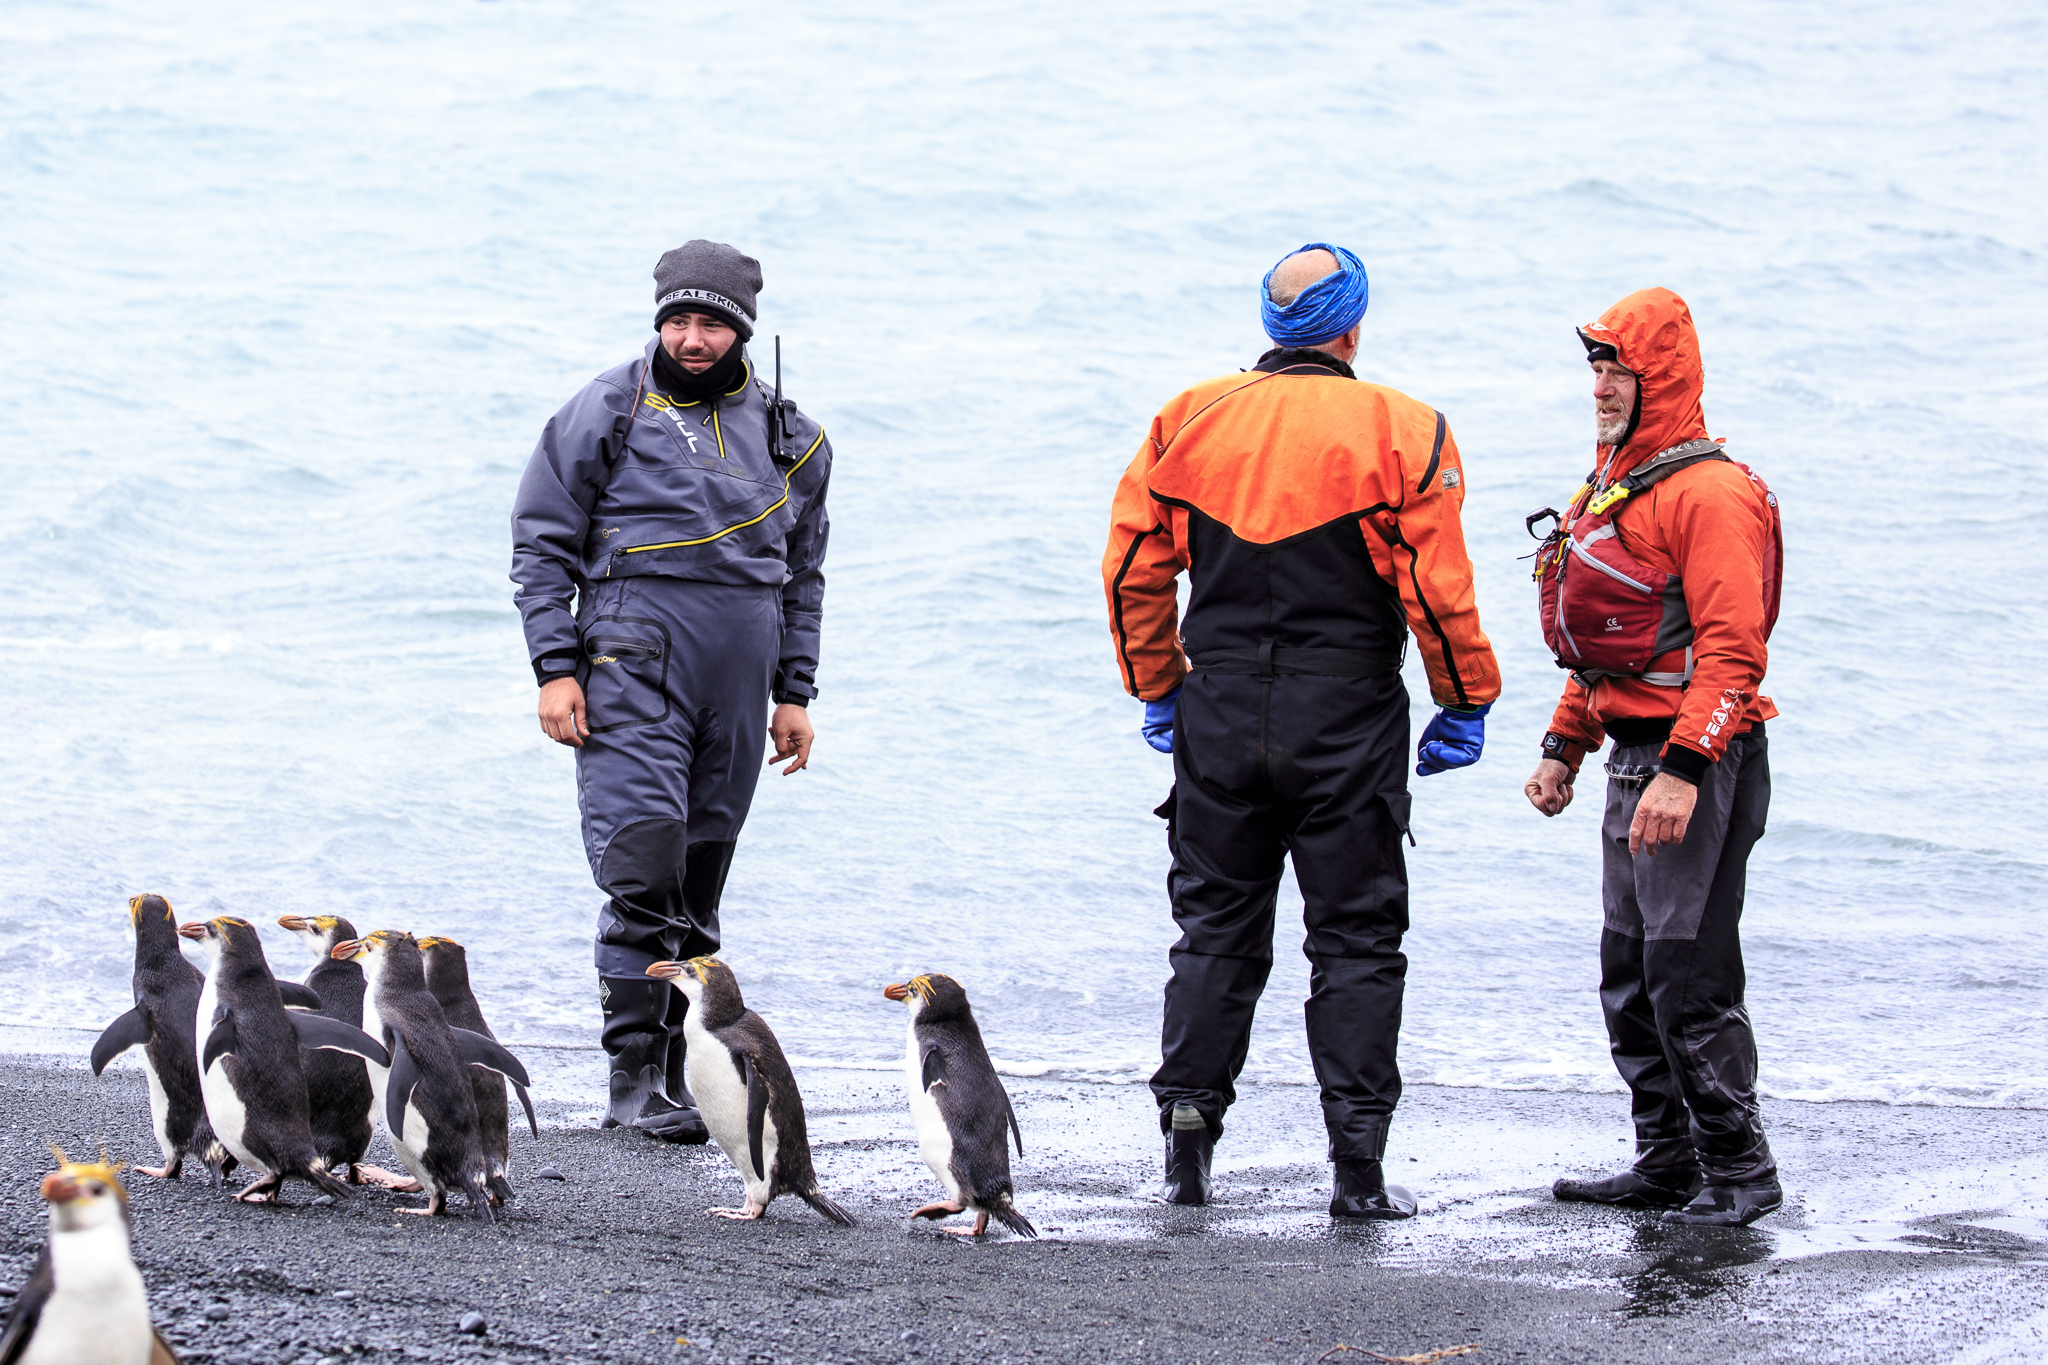 Royal Penguins waddling past the Heritage Expedition crew